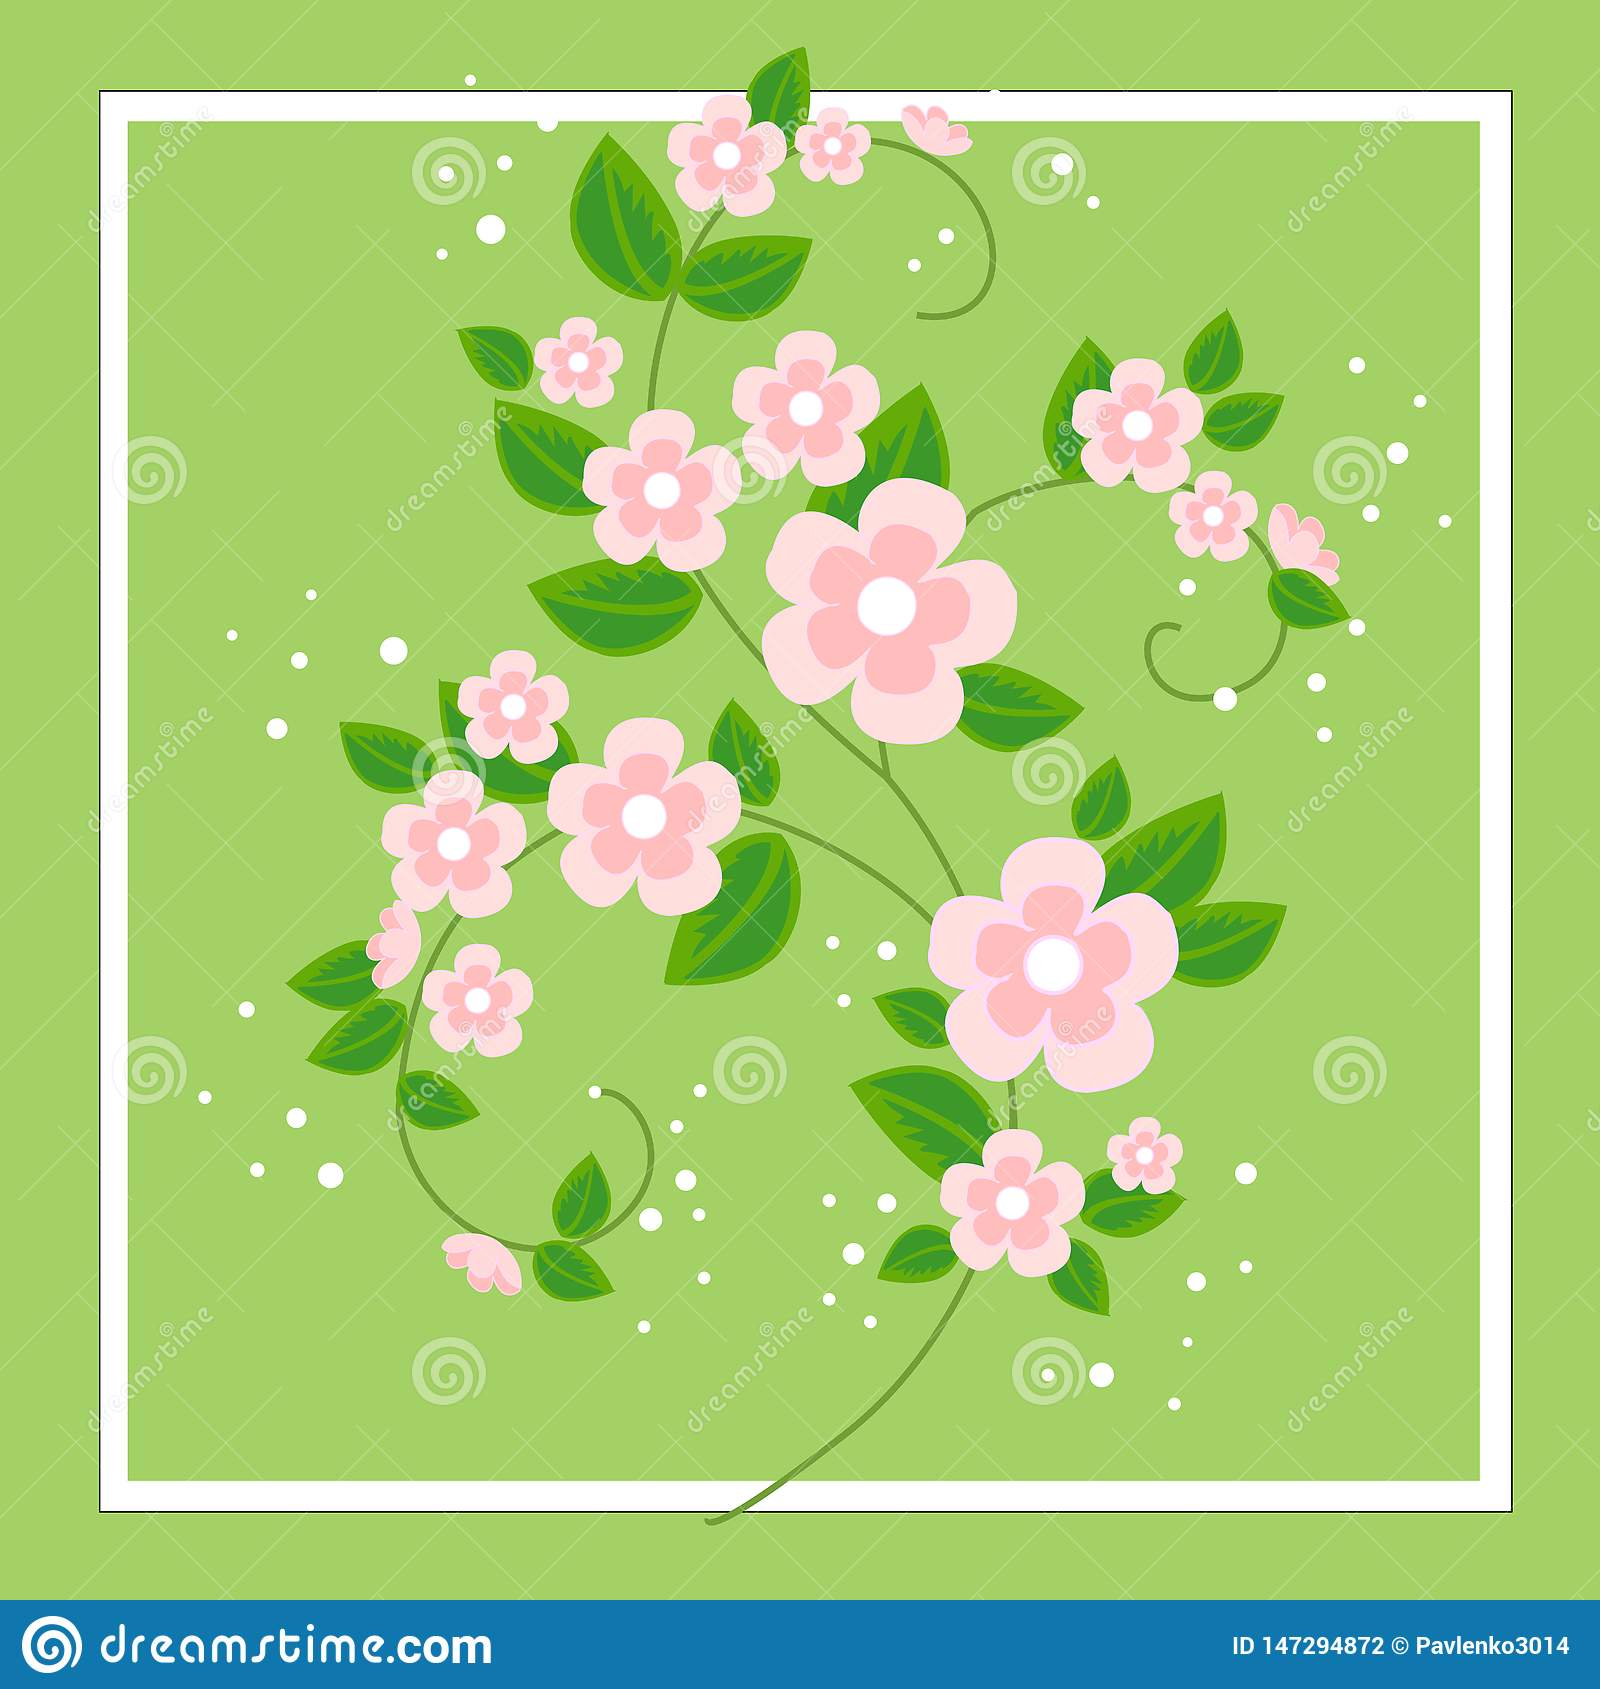 A beautiful bouquet for congratulations. Delicate branches of pink flowers. Spring background. Vector illustration